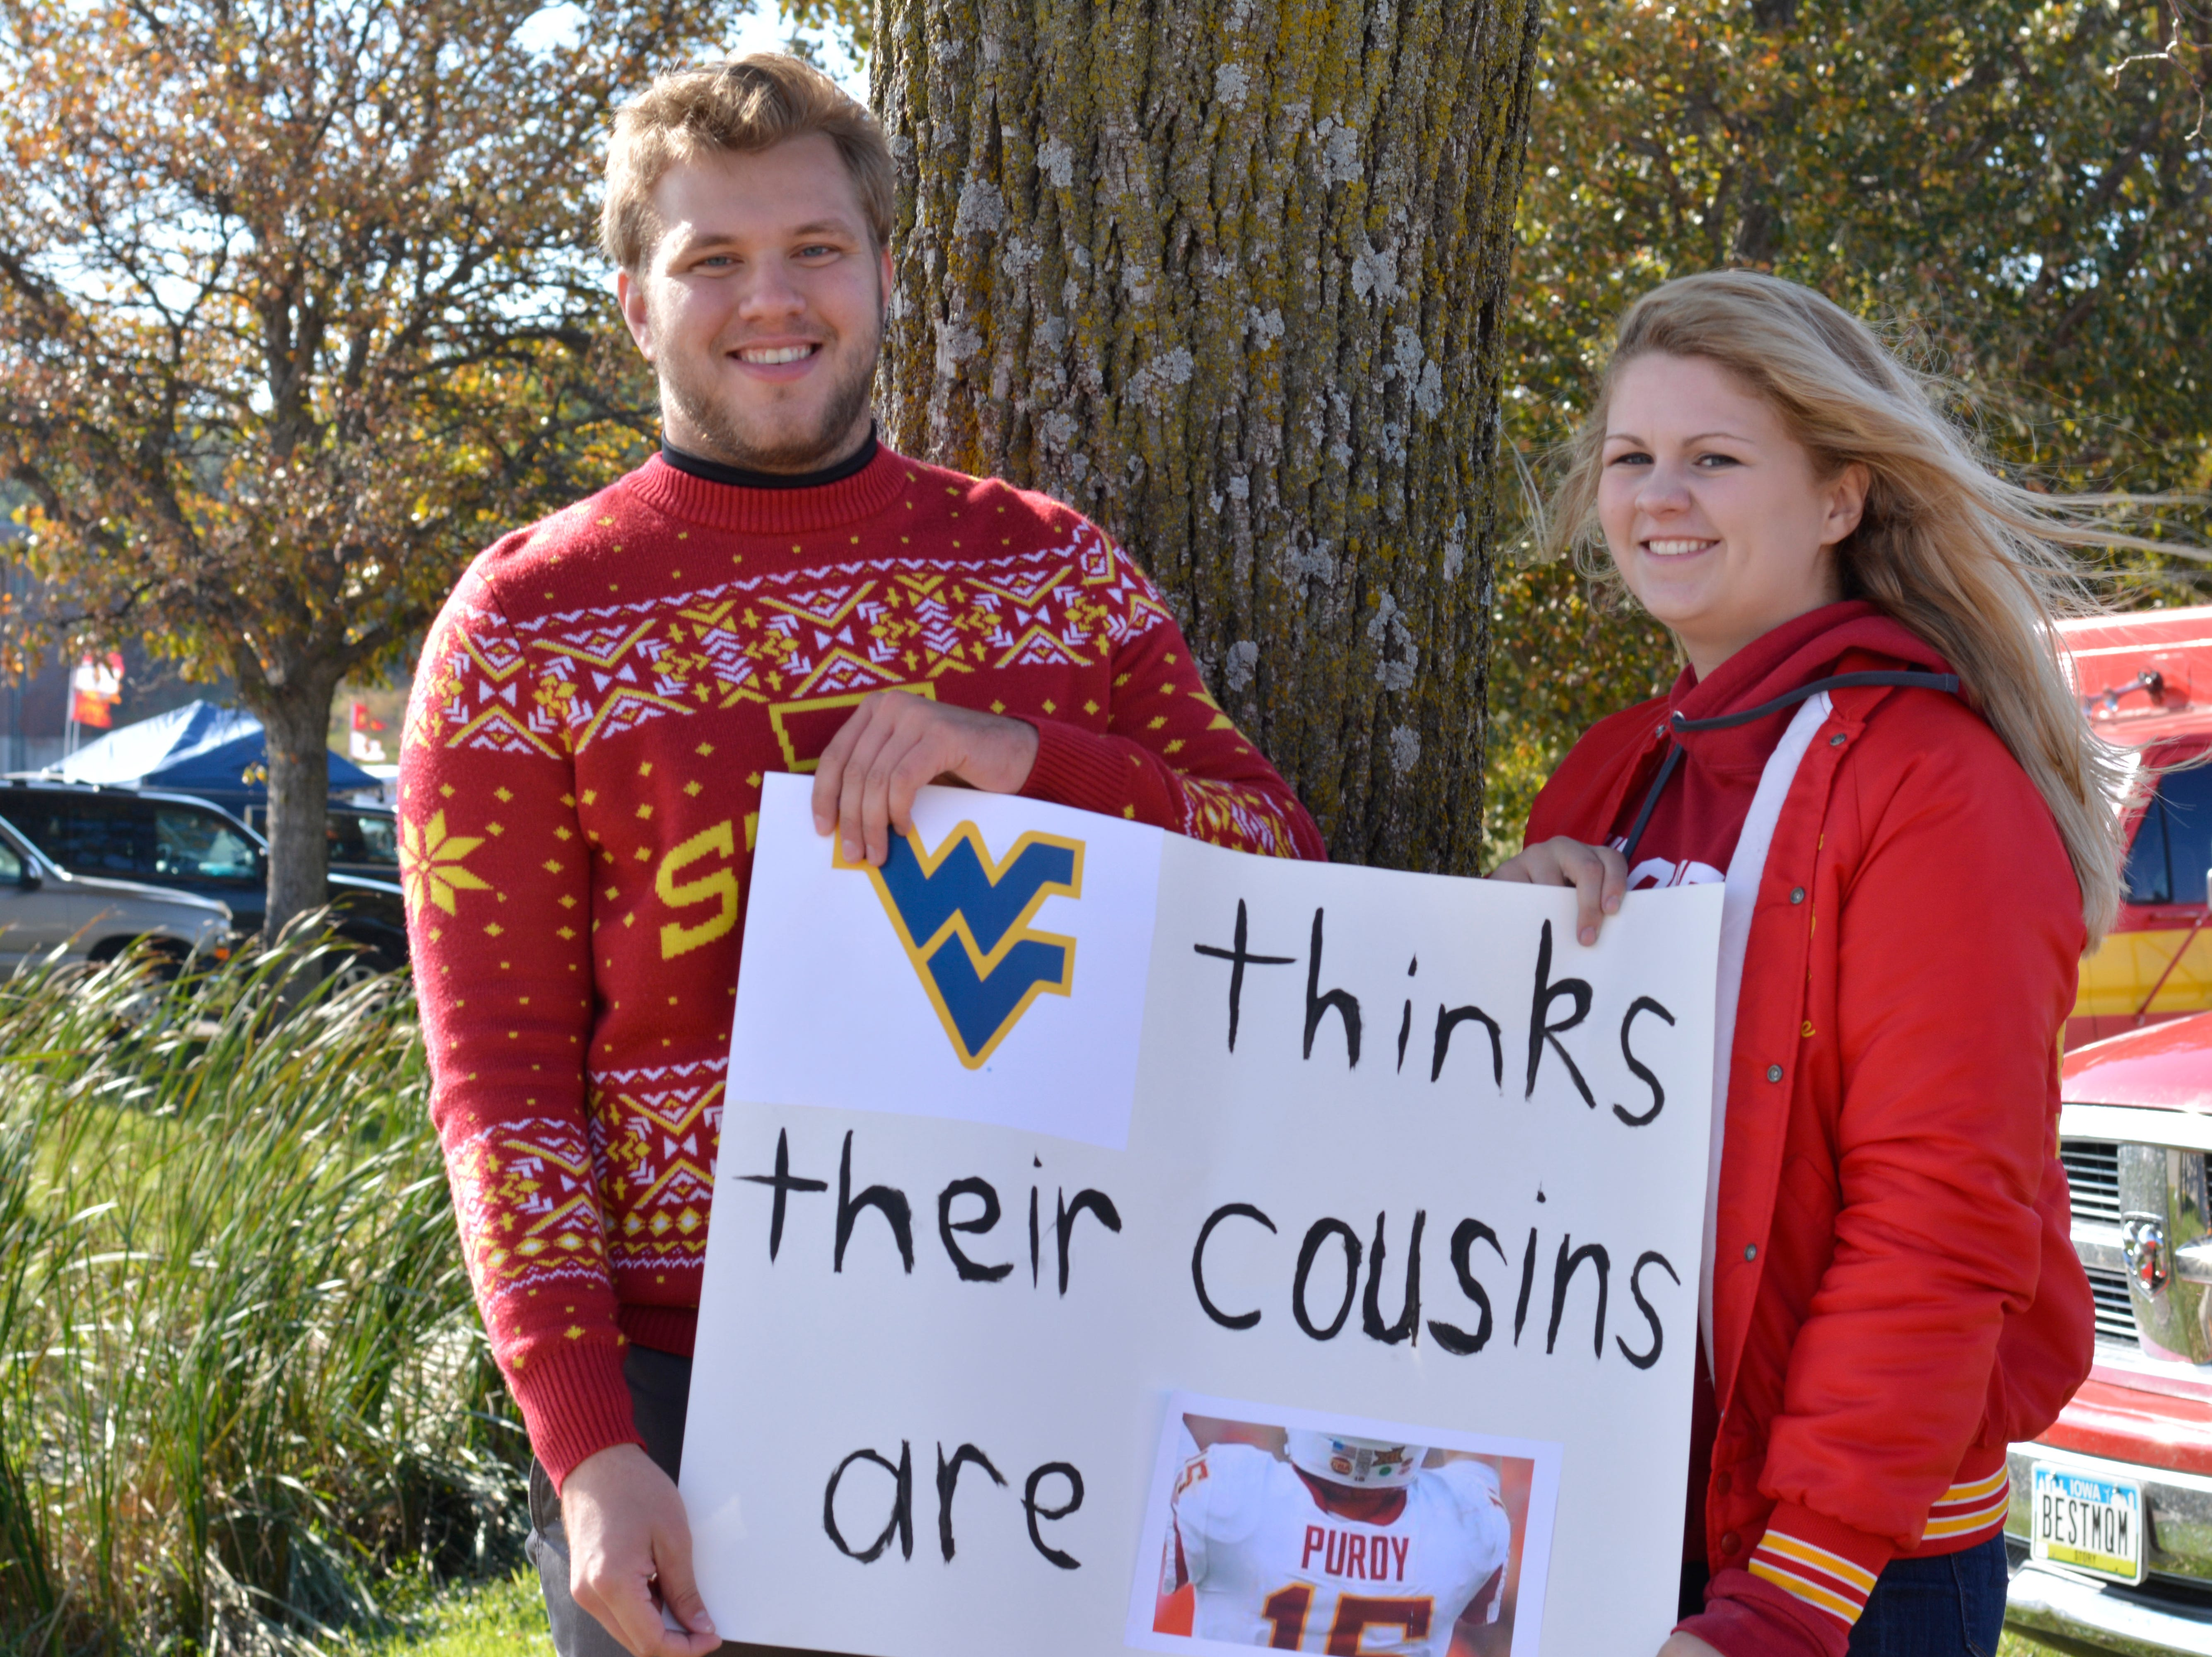 Colton Wood and Abby O'Neill before the Iowa State University football game against West Virginia in Ames on Oct. 13.